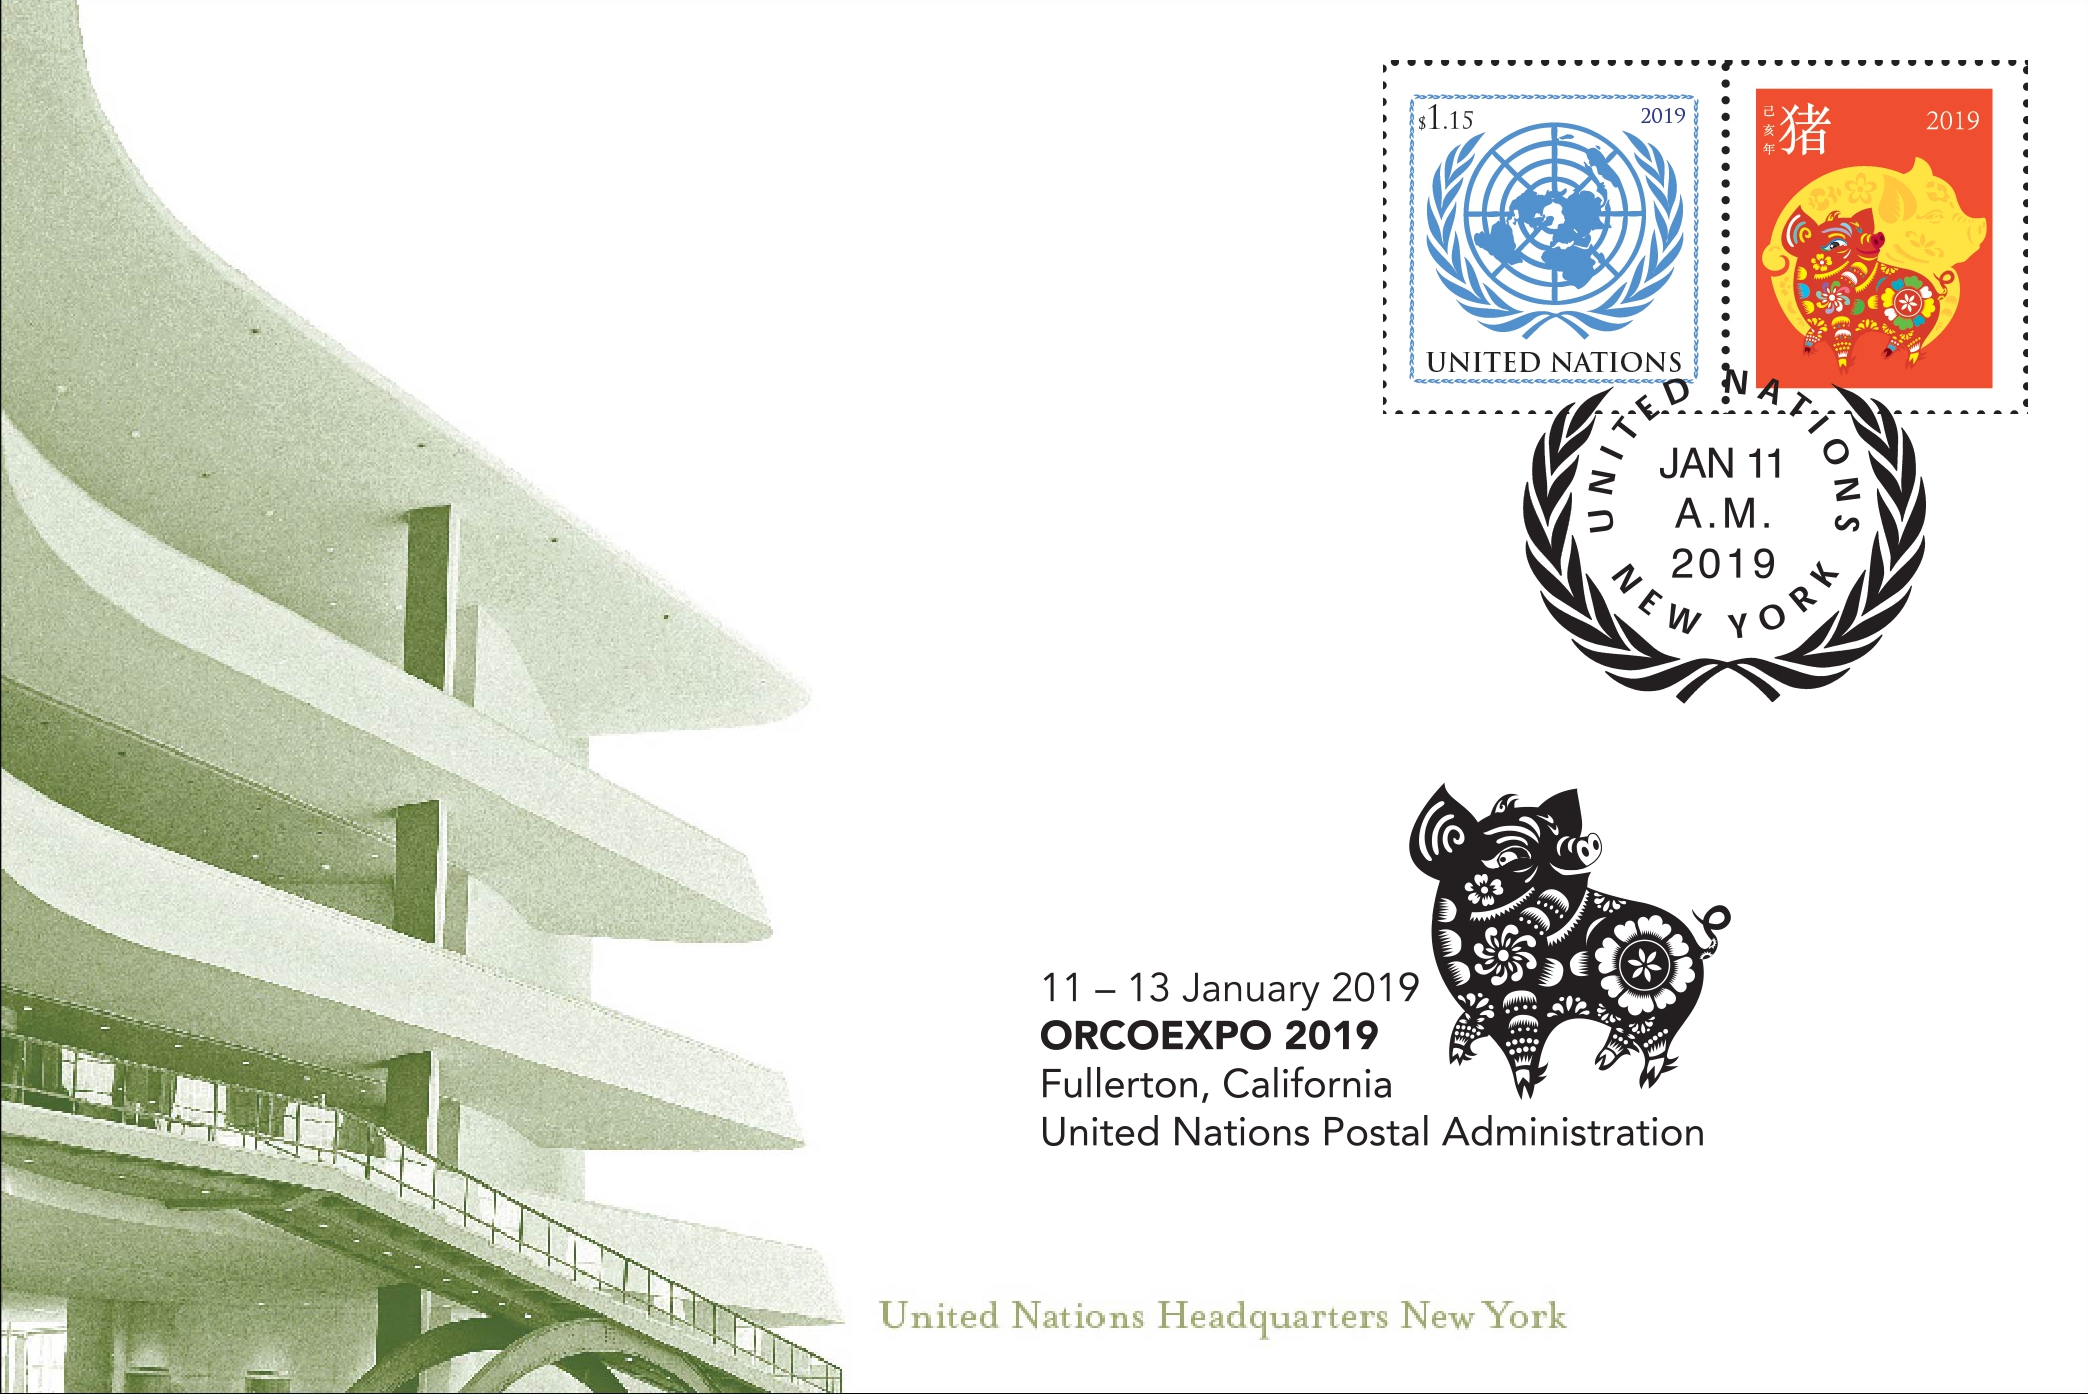 United Nations (New York) - Year of the Pig (January 11, 2019) show card